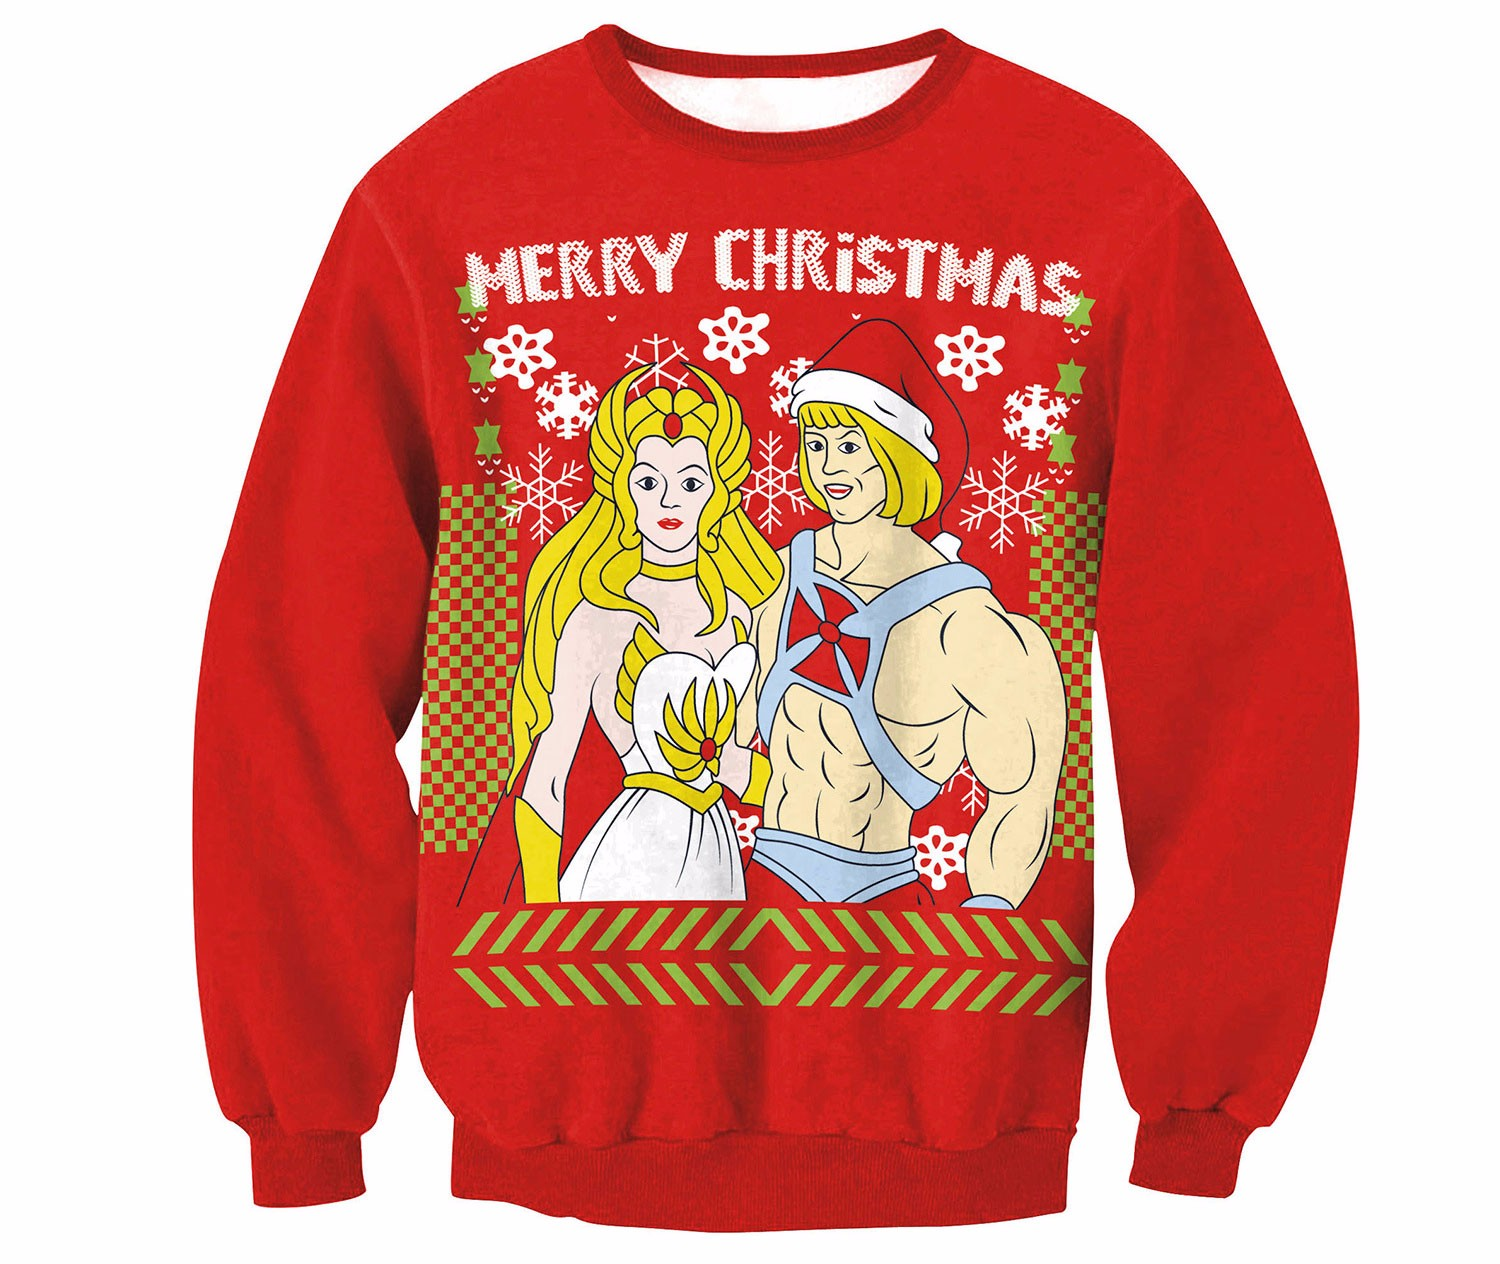 He-Man Christmas sweater